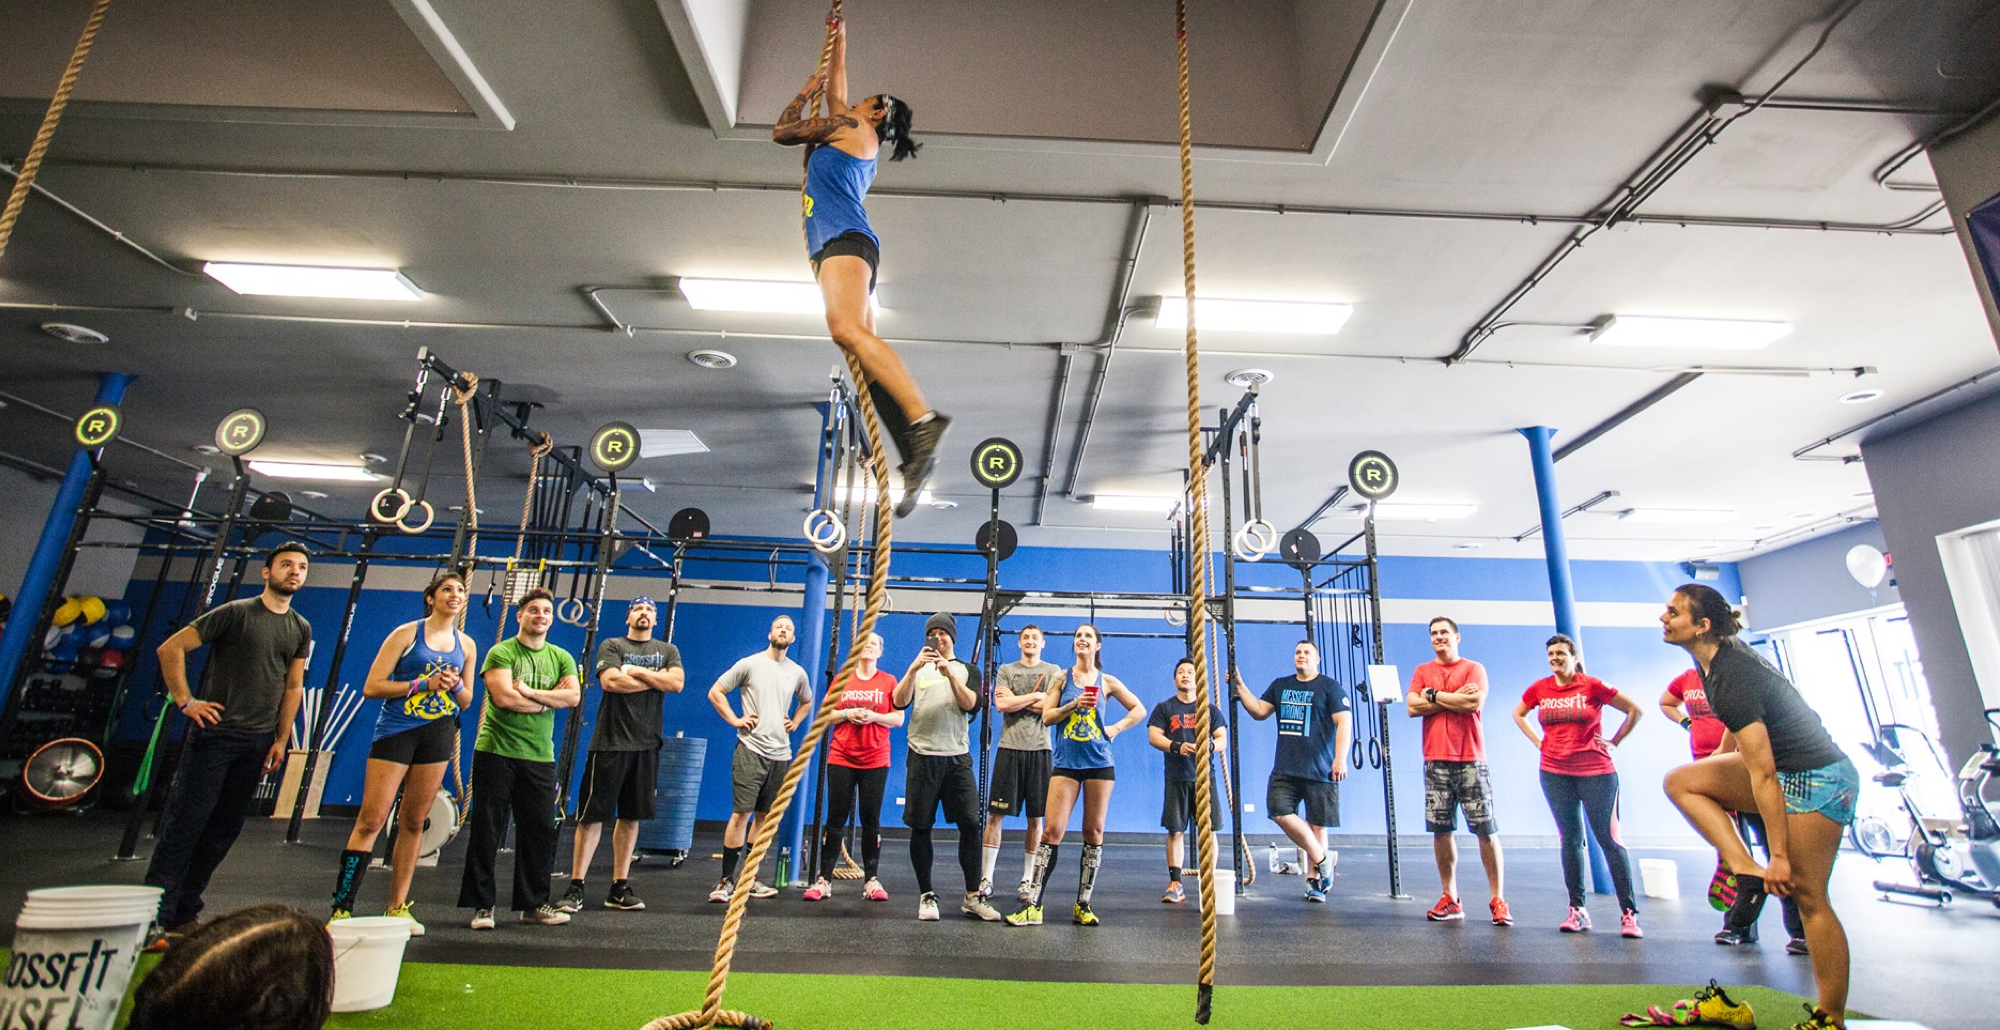 Top Crossfit Gyms in Chicago